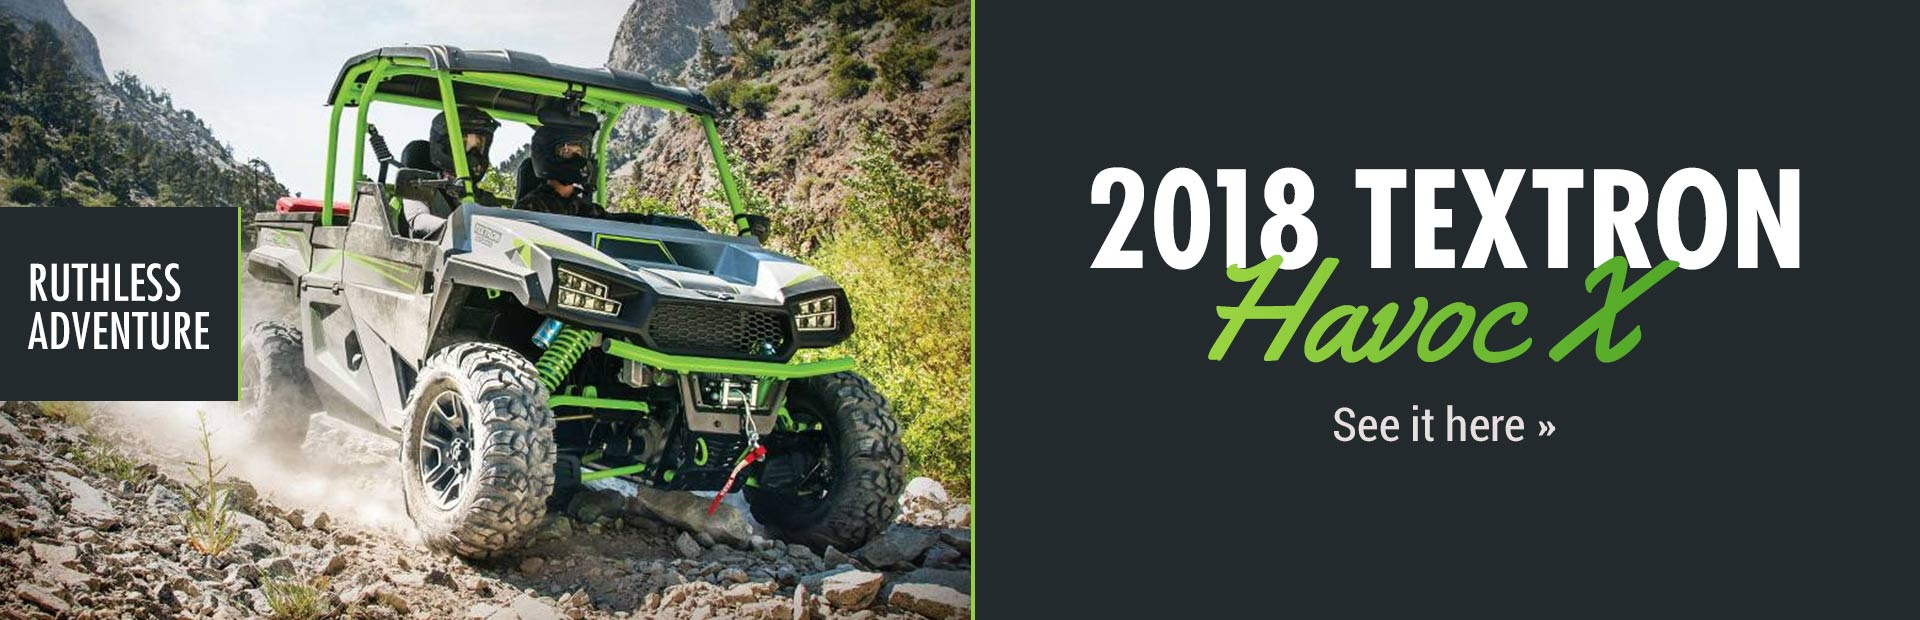 2018 Textron Havoc X: Click here to view the model.